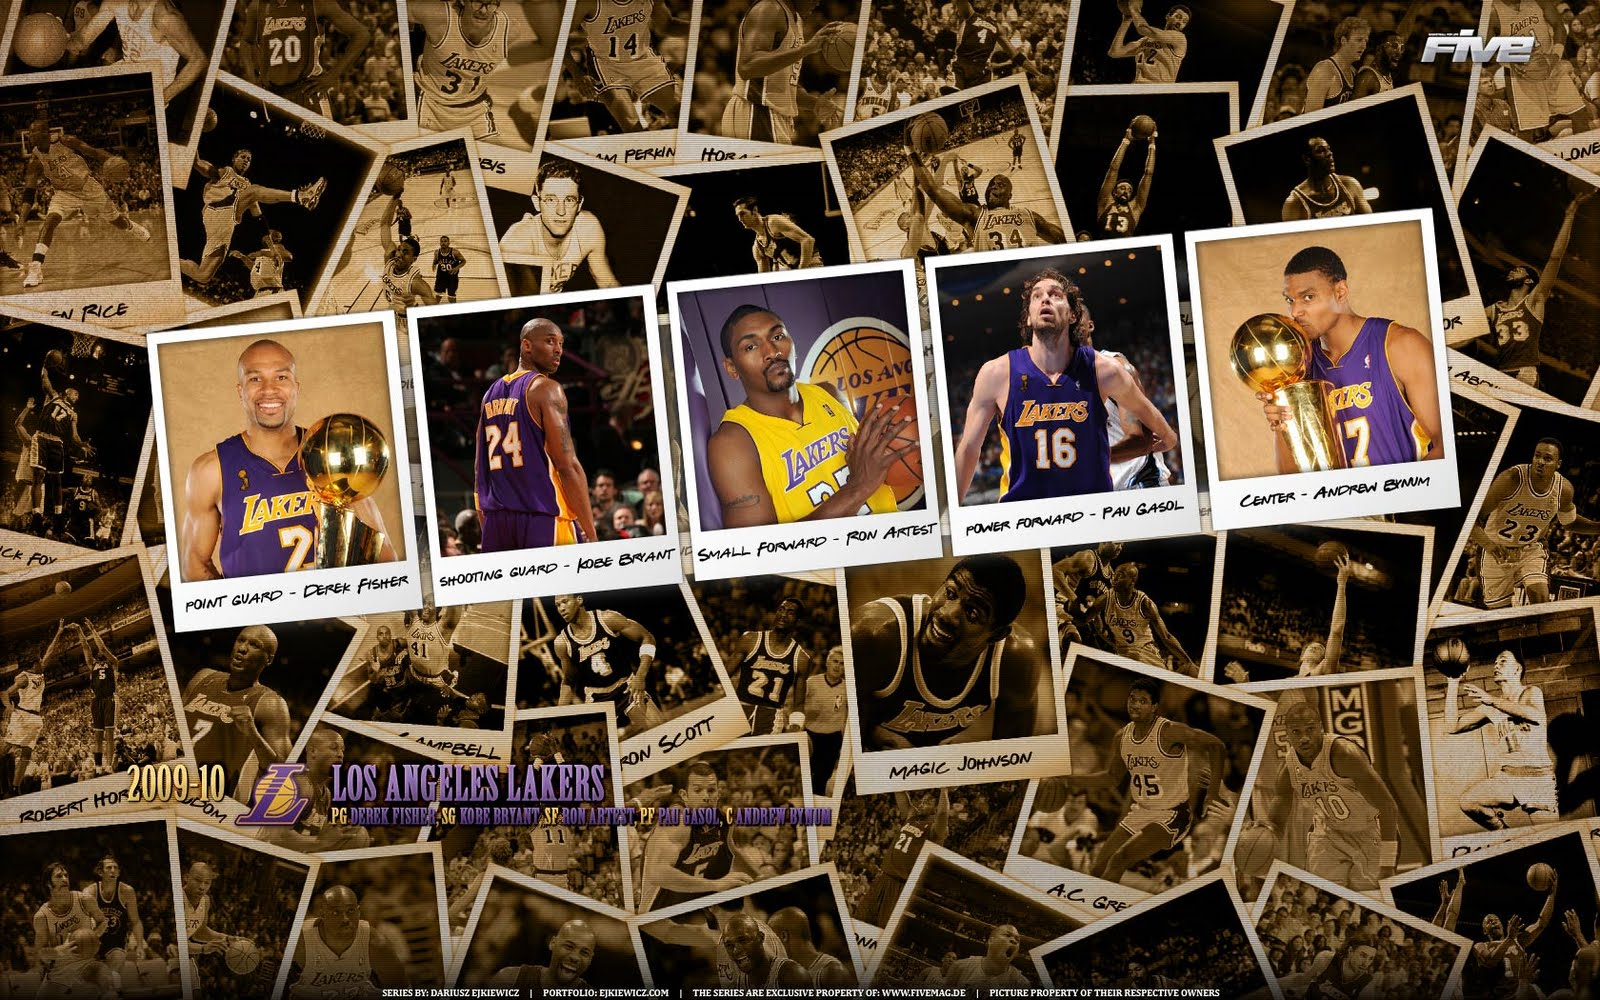 http://4.bp.blogspot.com/_CPWQWdcuwA0/TBsOWZC9iYI/AAAAAAAAADk/StbXQk8P8Mo/s1600/Los-Angeles-Lakers-2010-Widescreen-Wallpaper.jpg